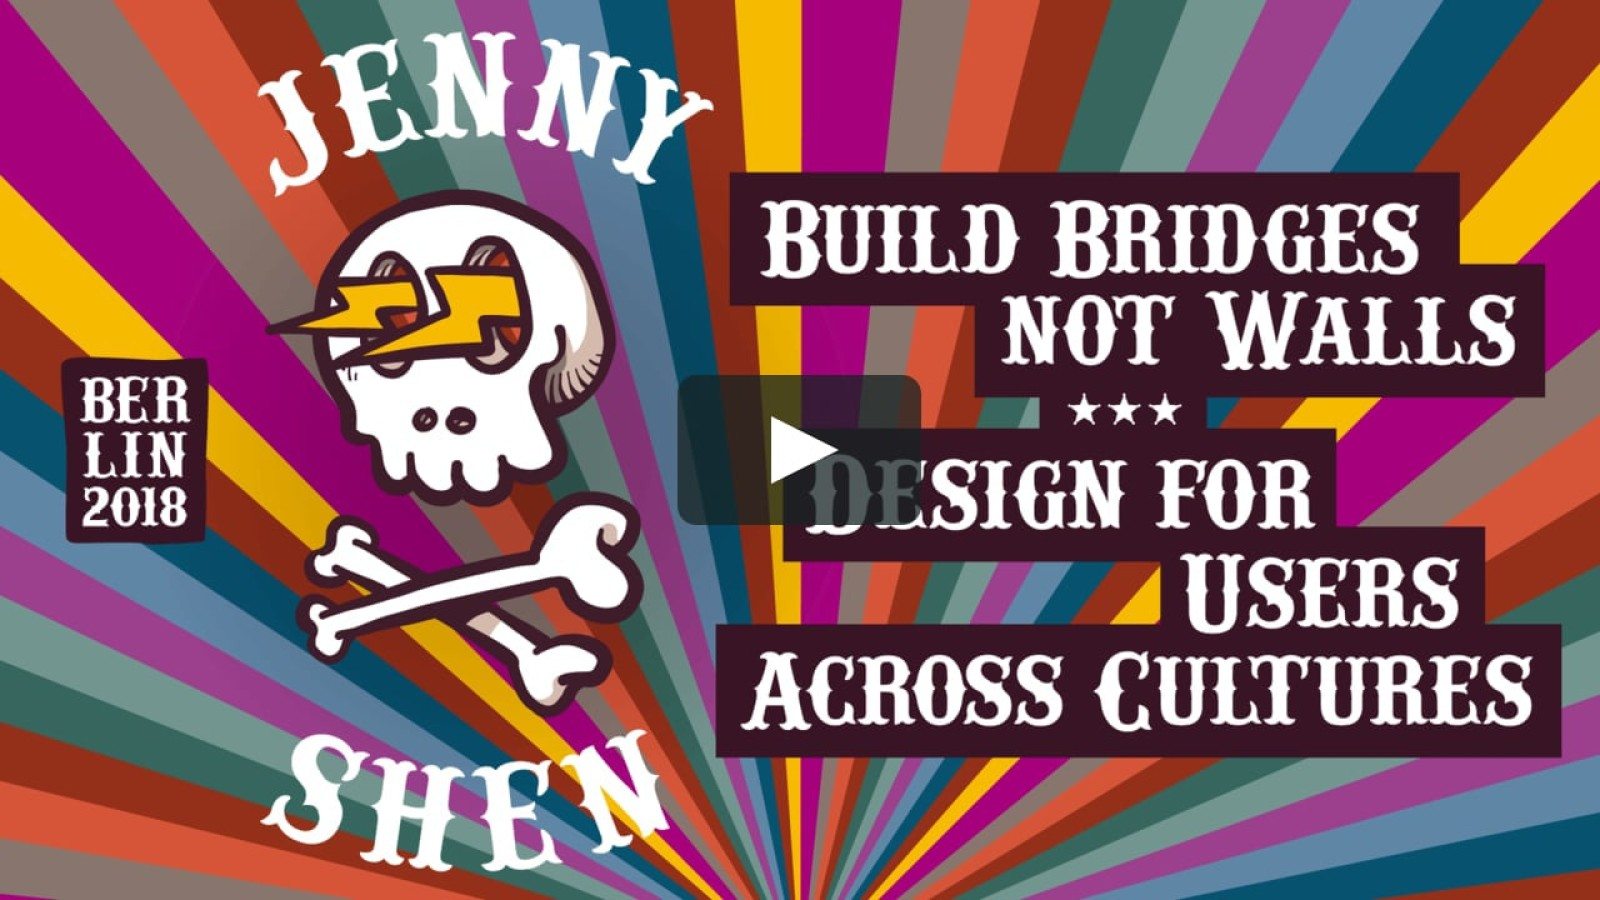 Build bridges, not walls—Design for users across cultures